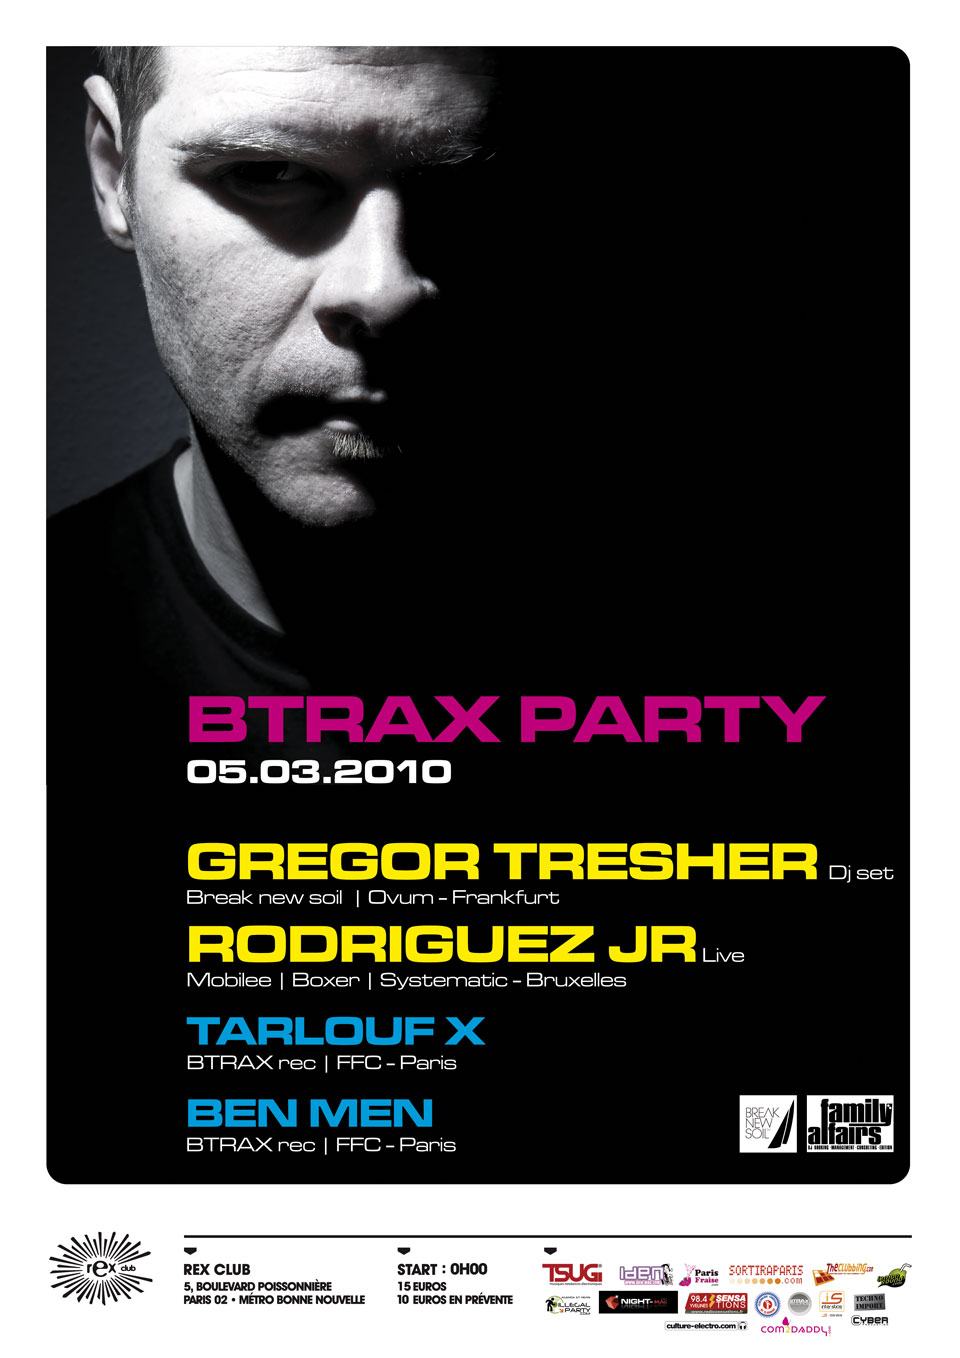 BTRAX party 05.035.10